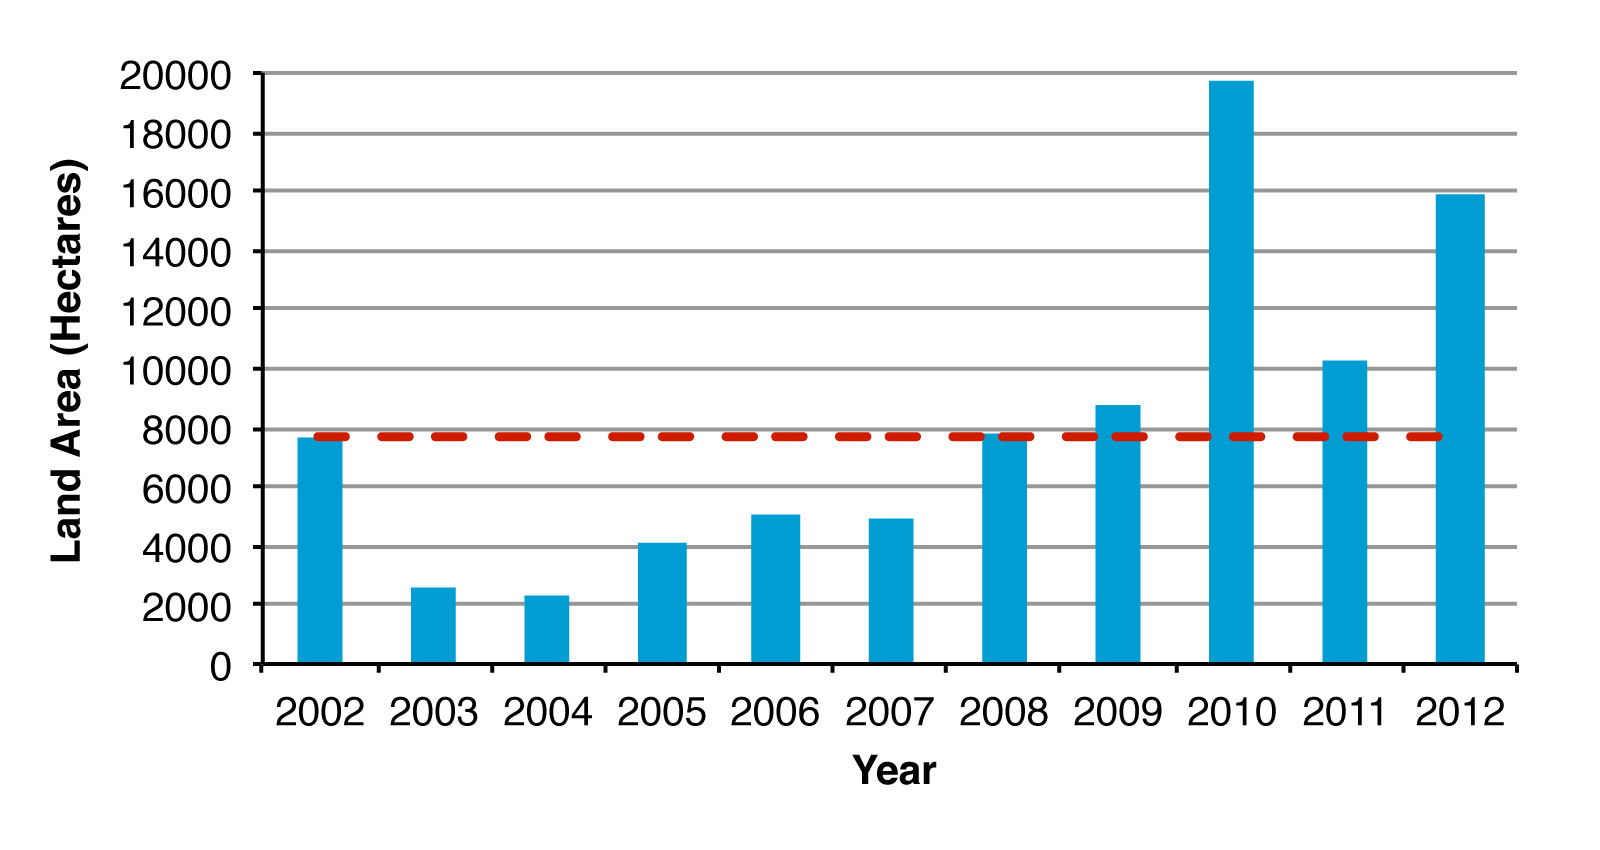 Figure 1. Annual land area with stewardship activities in Ontario, 2002-2012 (dashed line represents average) (Source: Ducks Unlimited Canada, Conservation Ontario, Nature Conservancy of Canada, Ontario Federation of Anglers and Hunters, Ontario Power Generation and Ontario Ministry of Natural Resources Stewardship Program) (Note: Data for the Ontario Ministry of Natural Resources Stewardship Program was only available for the years 2004-2012. Data for the Ontario Federation of Anglers and Hunters was only available for the years 2010-2012).